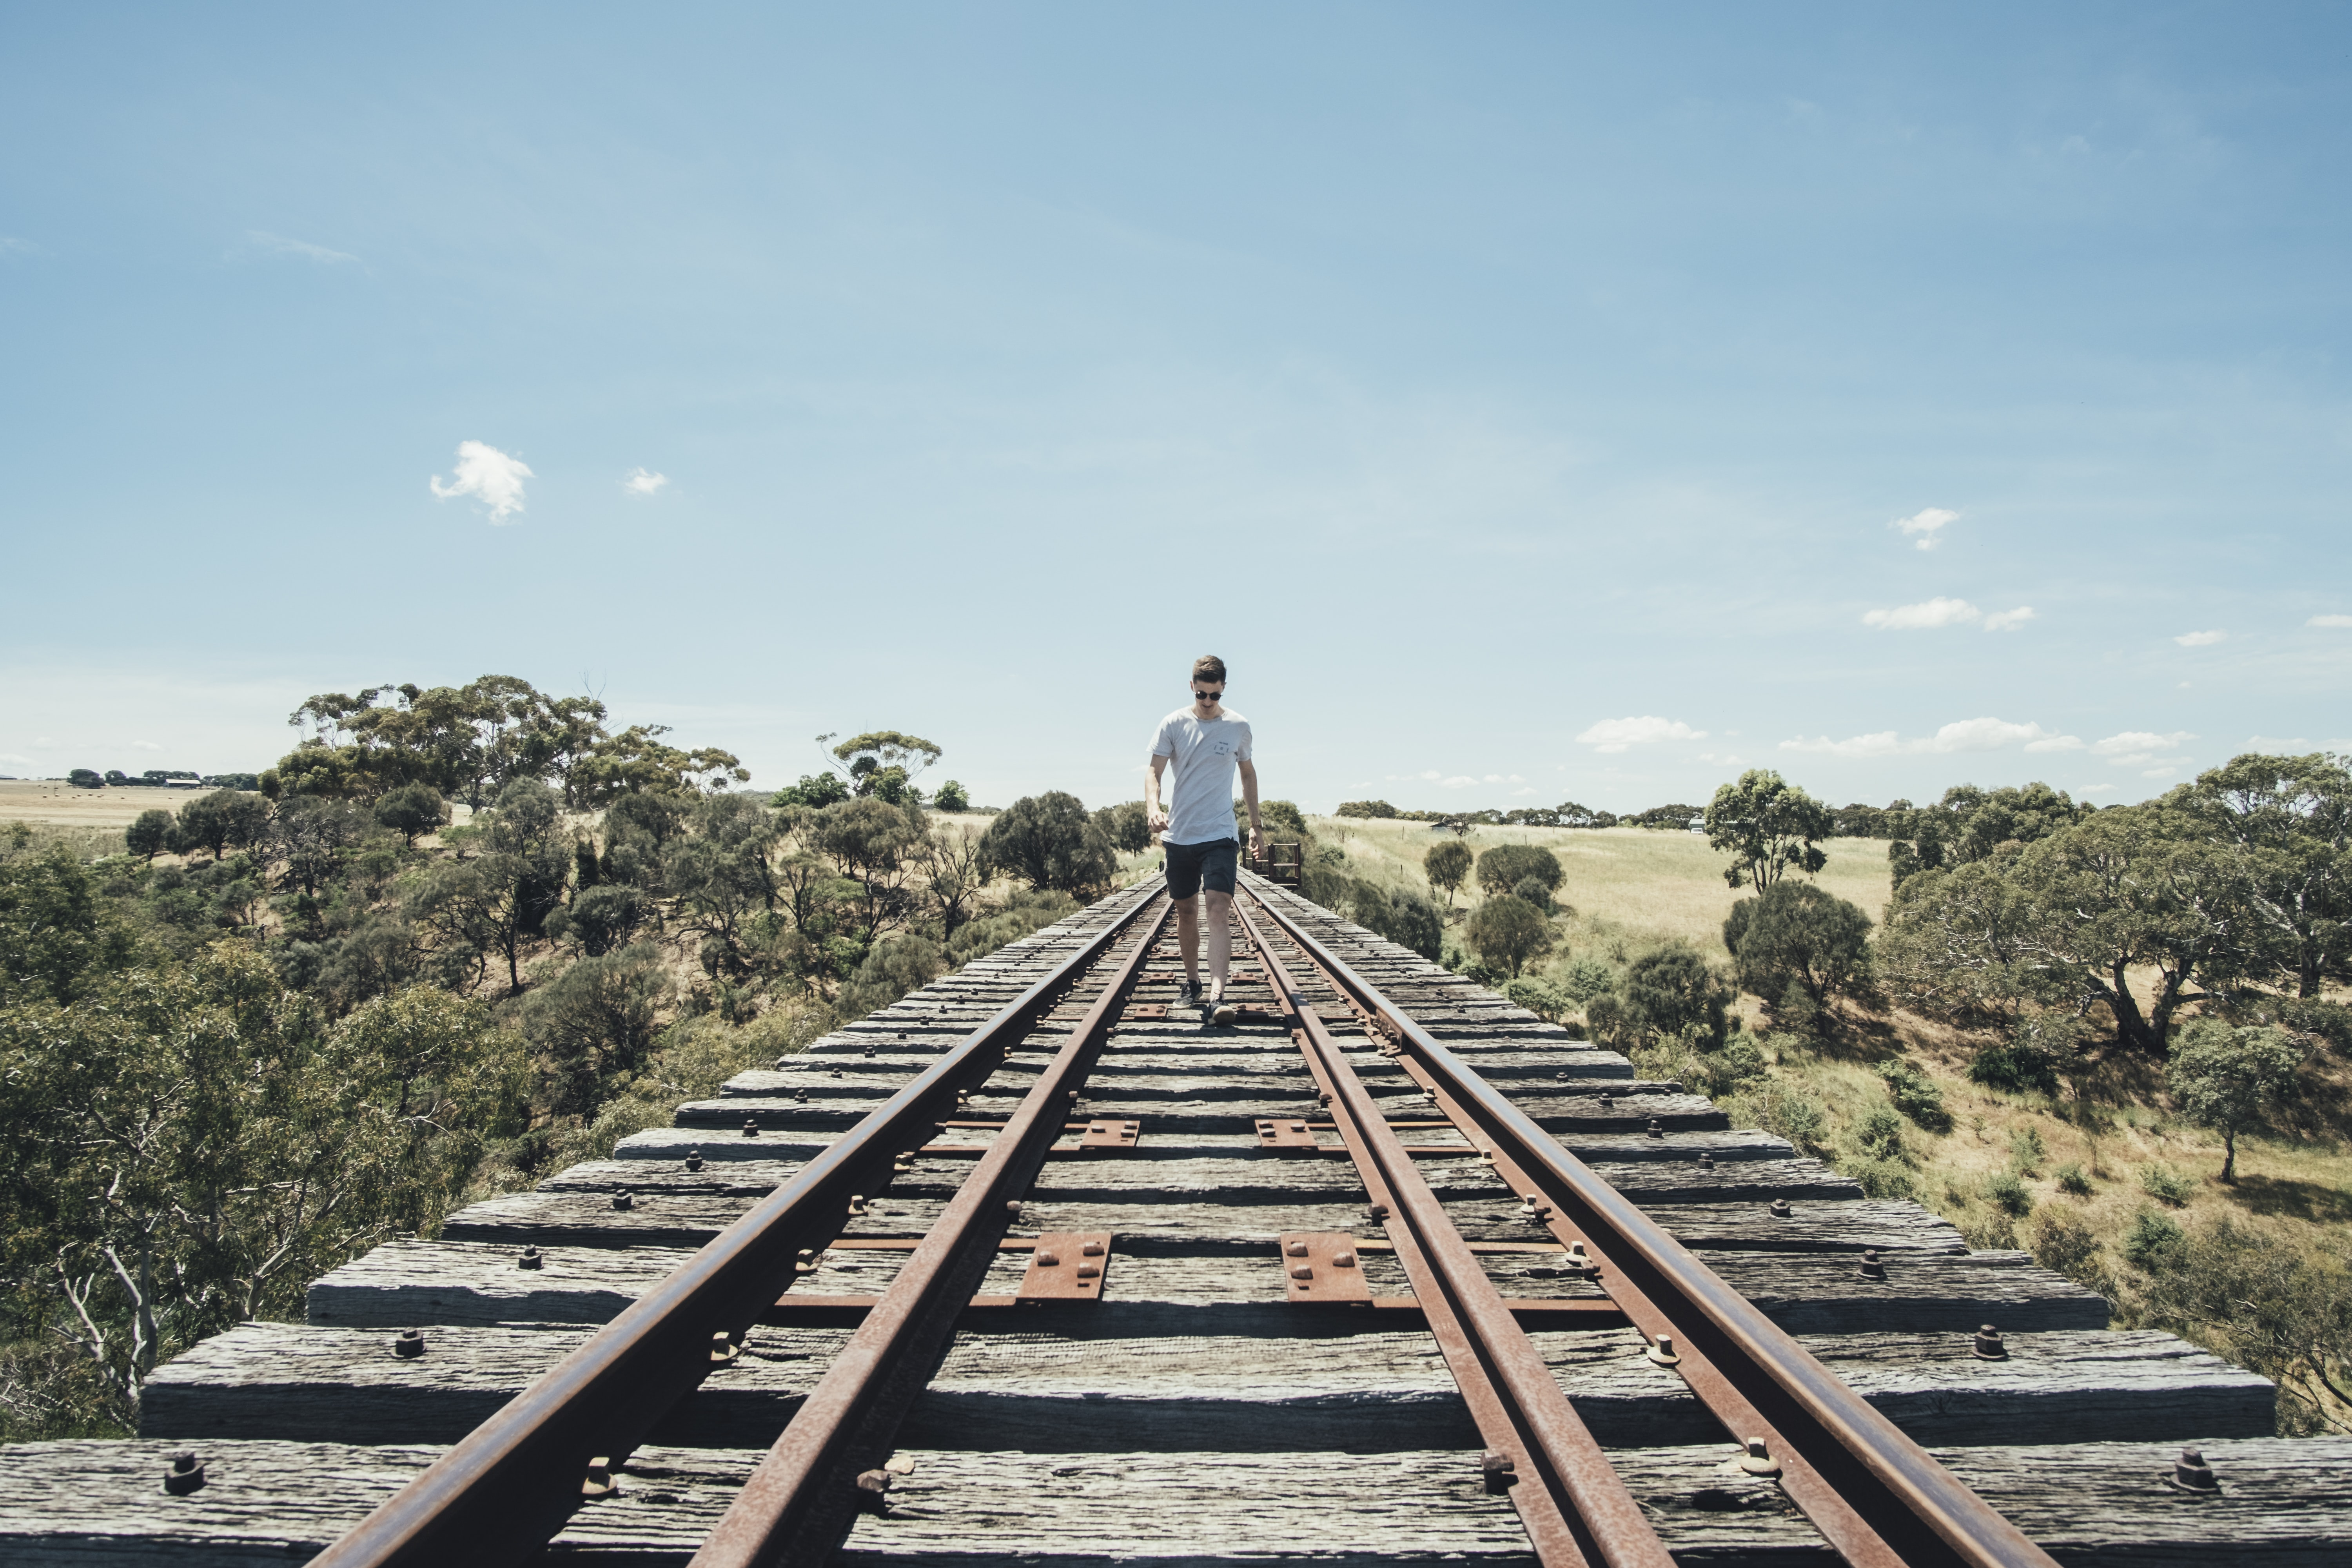 man walking on train rail track during day time